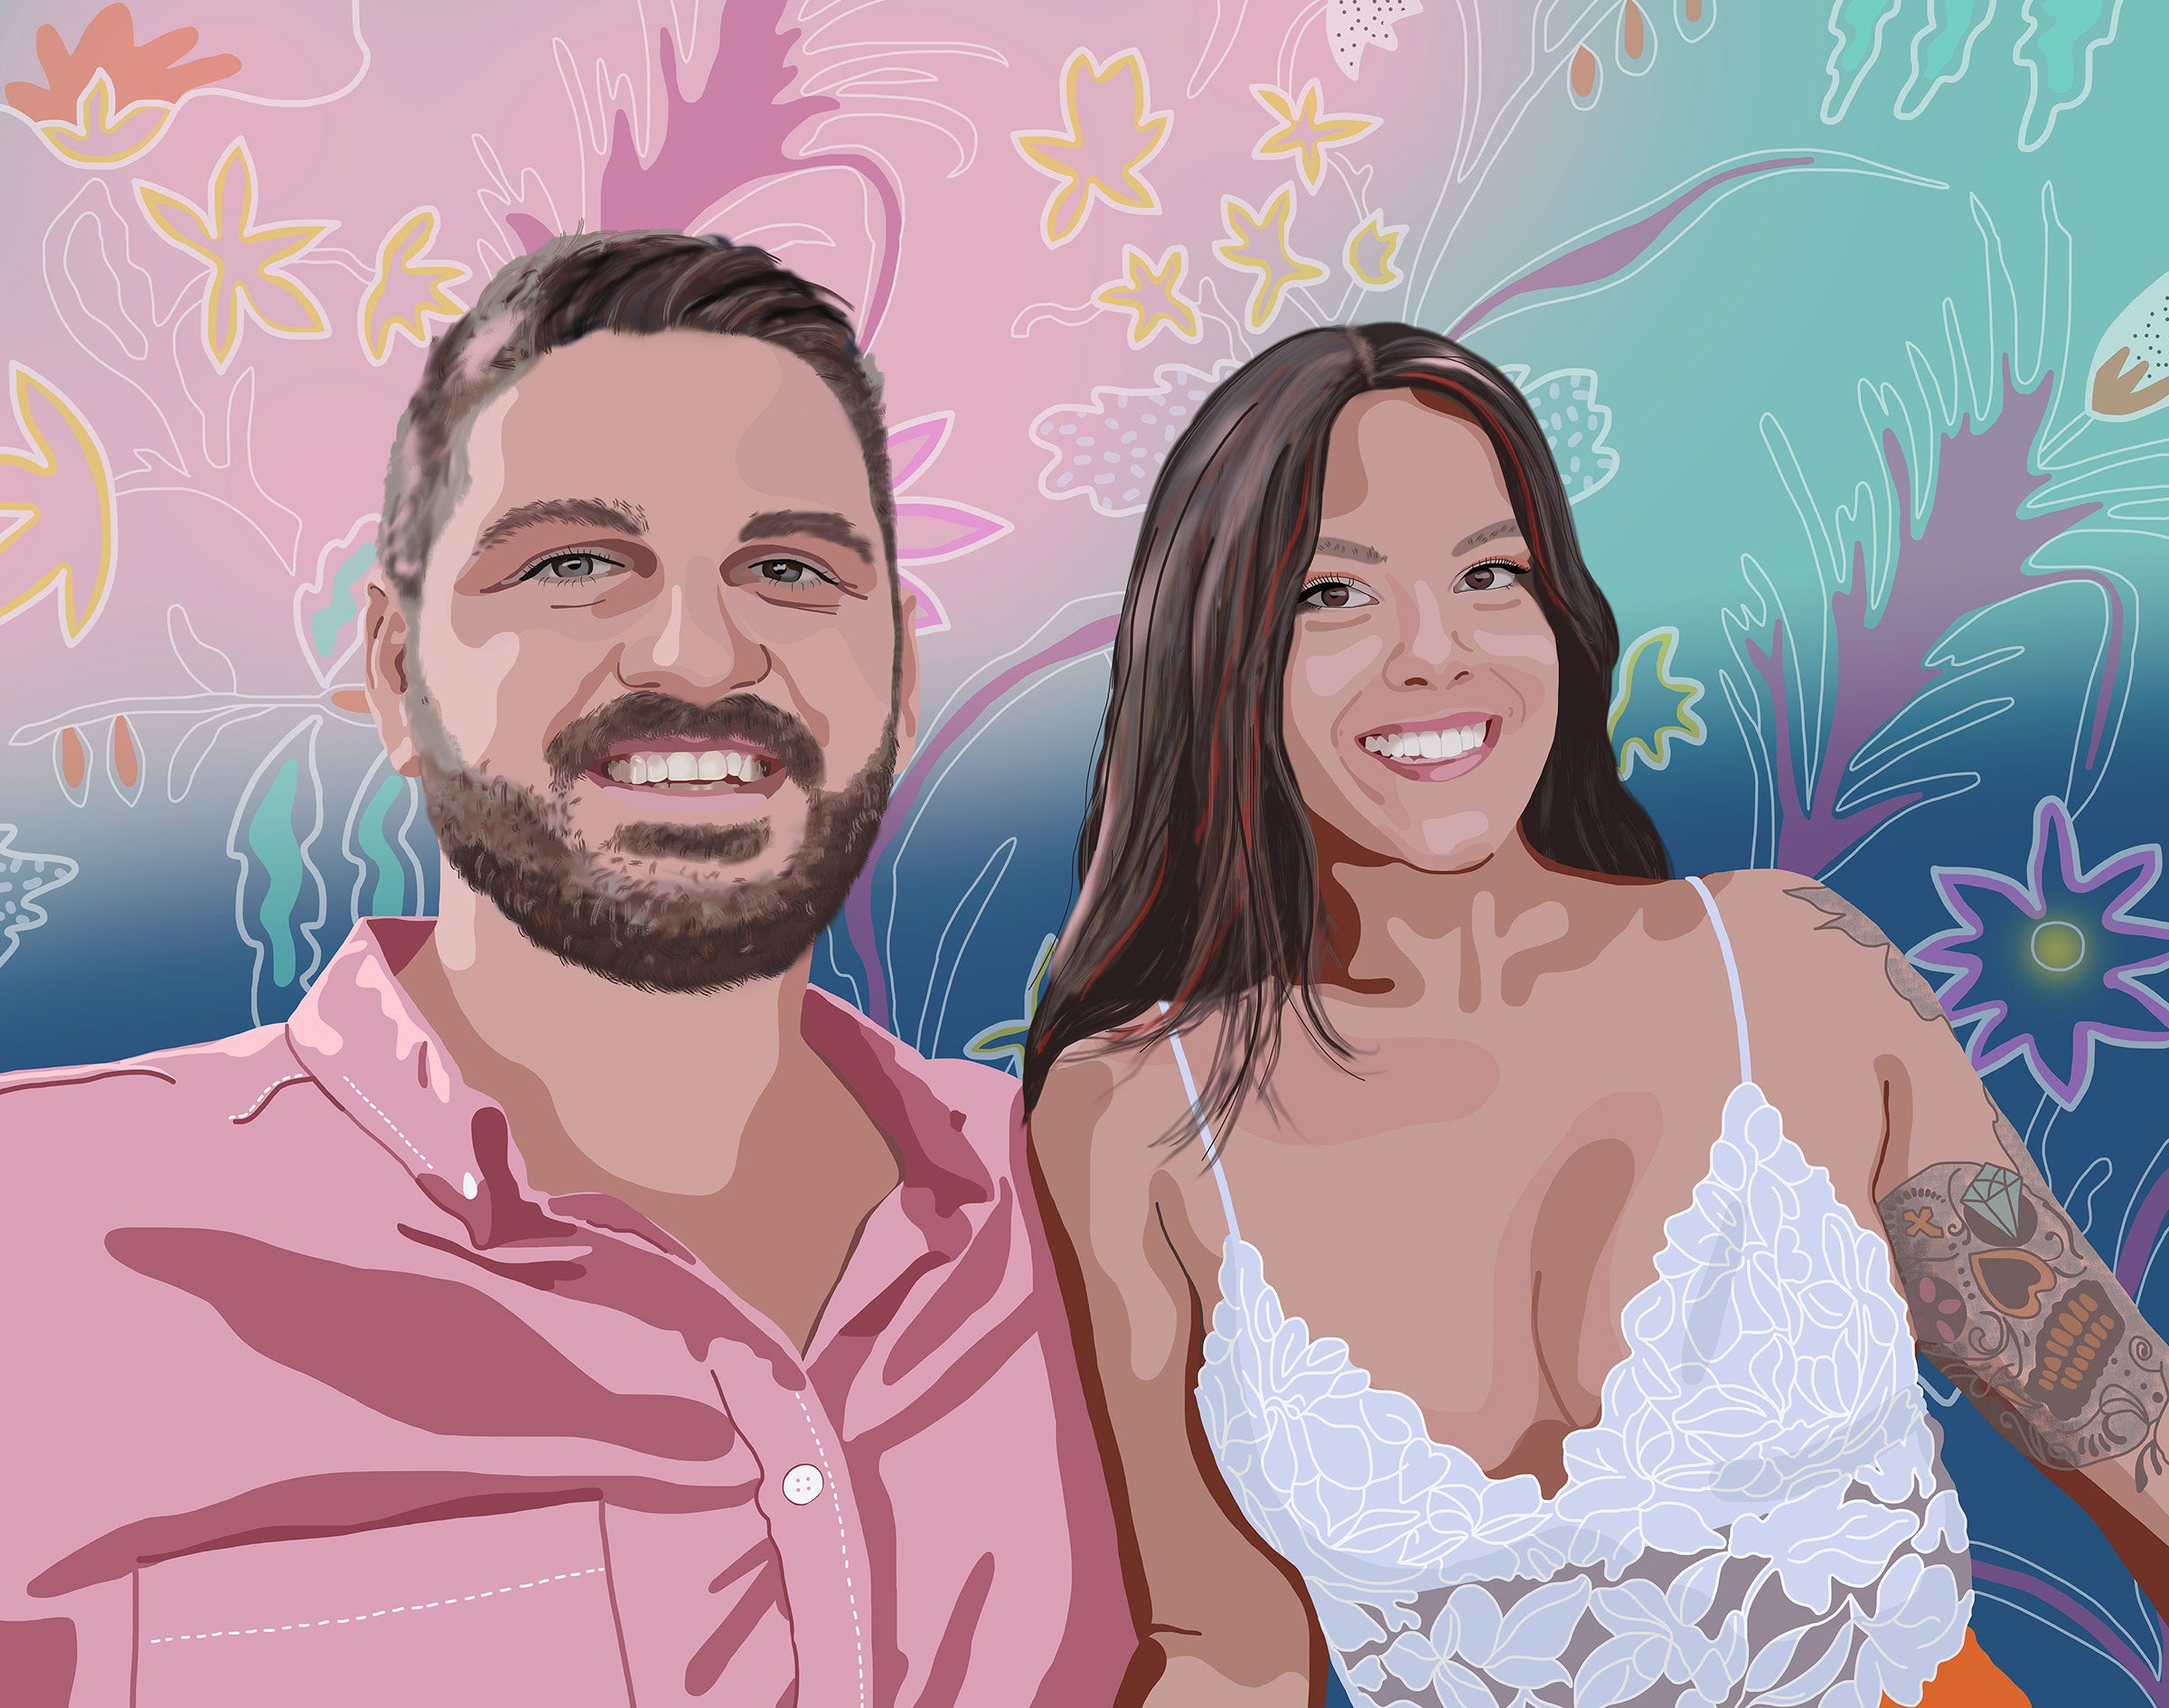 Custom couple portrait illustration drawing from photo